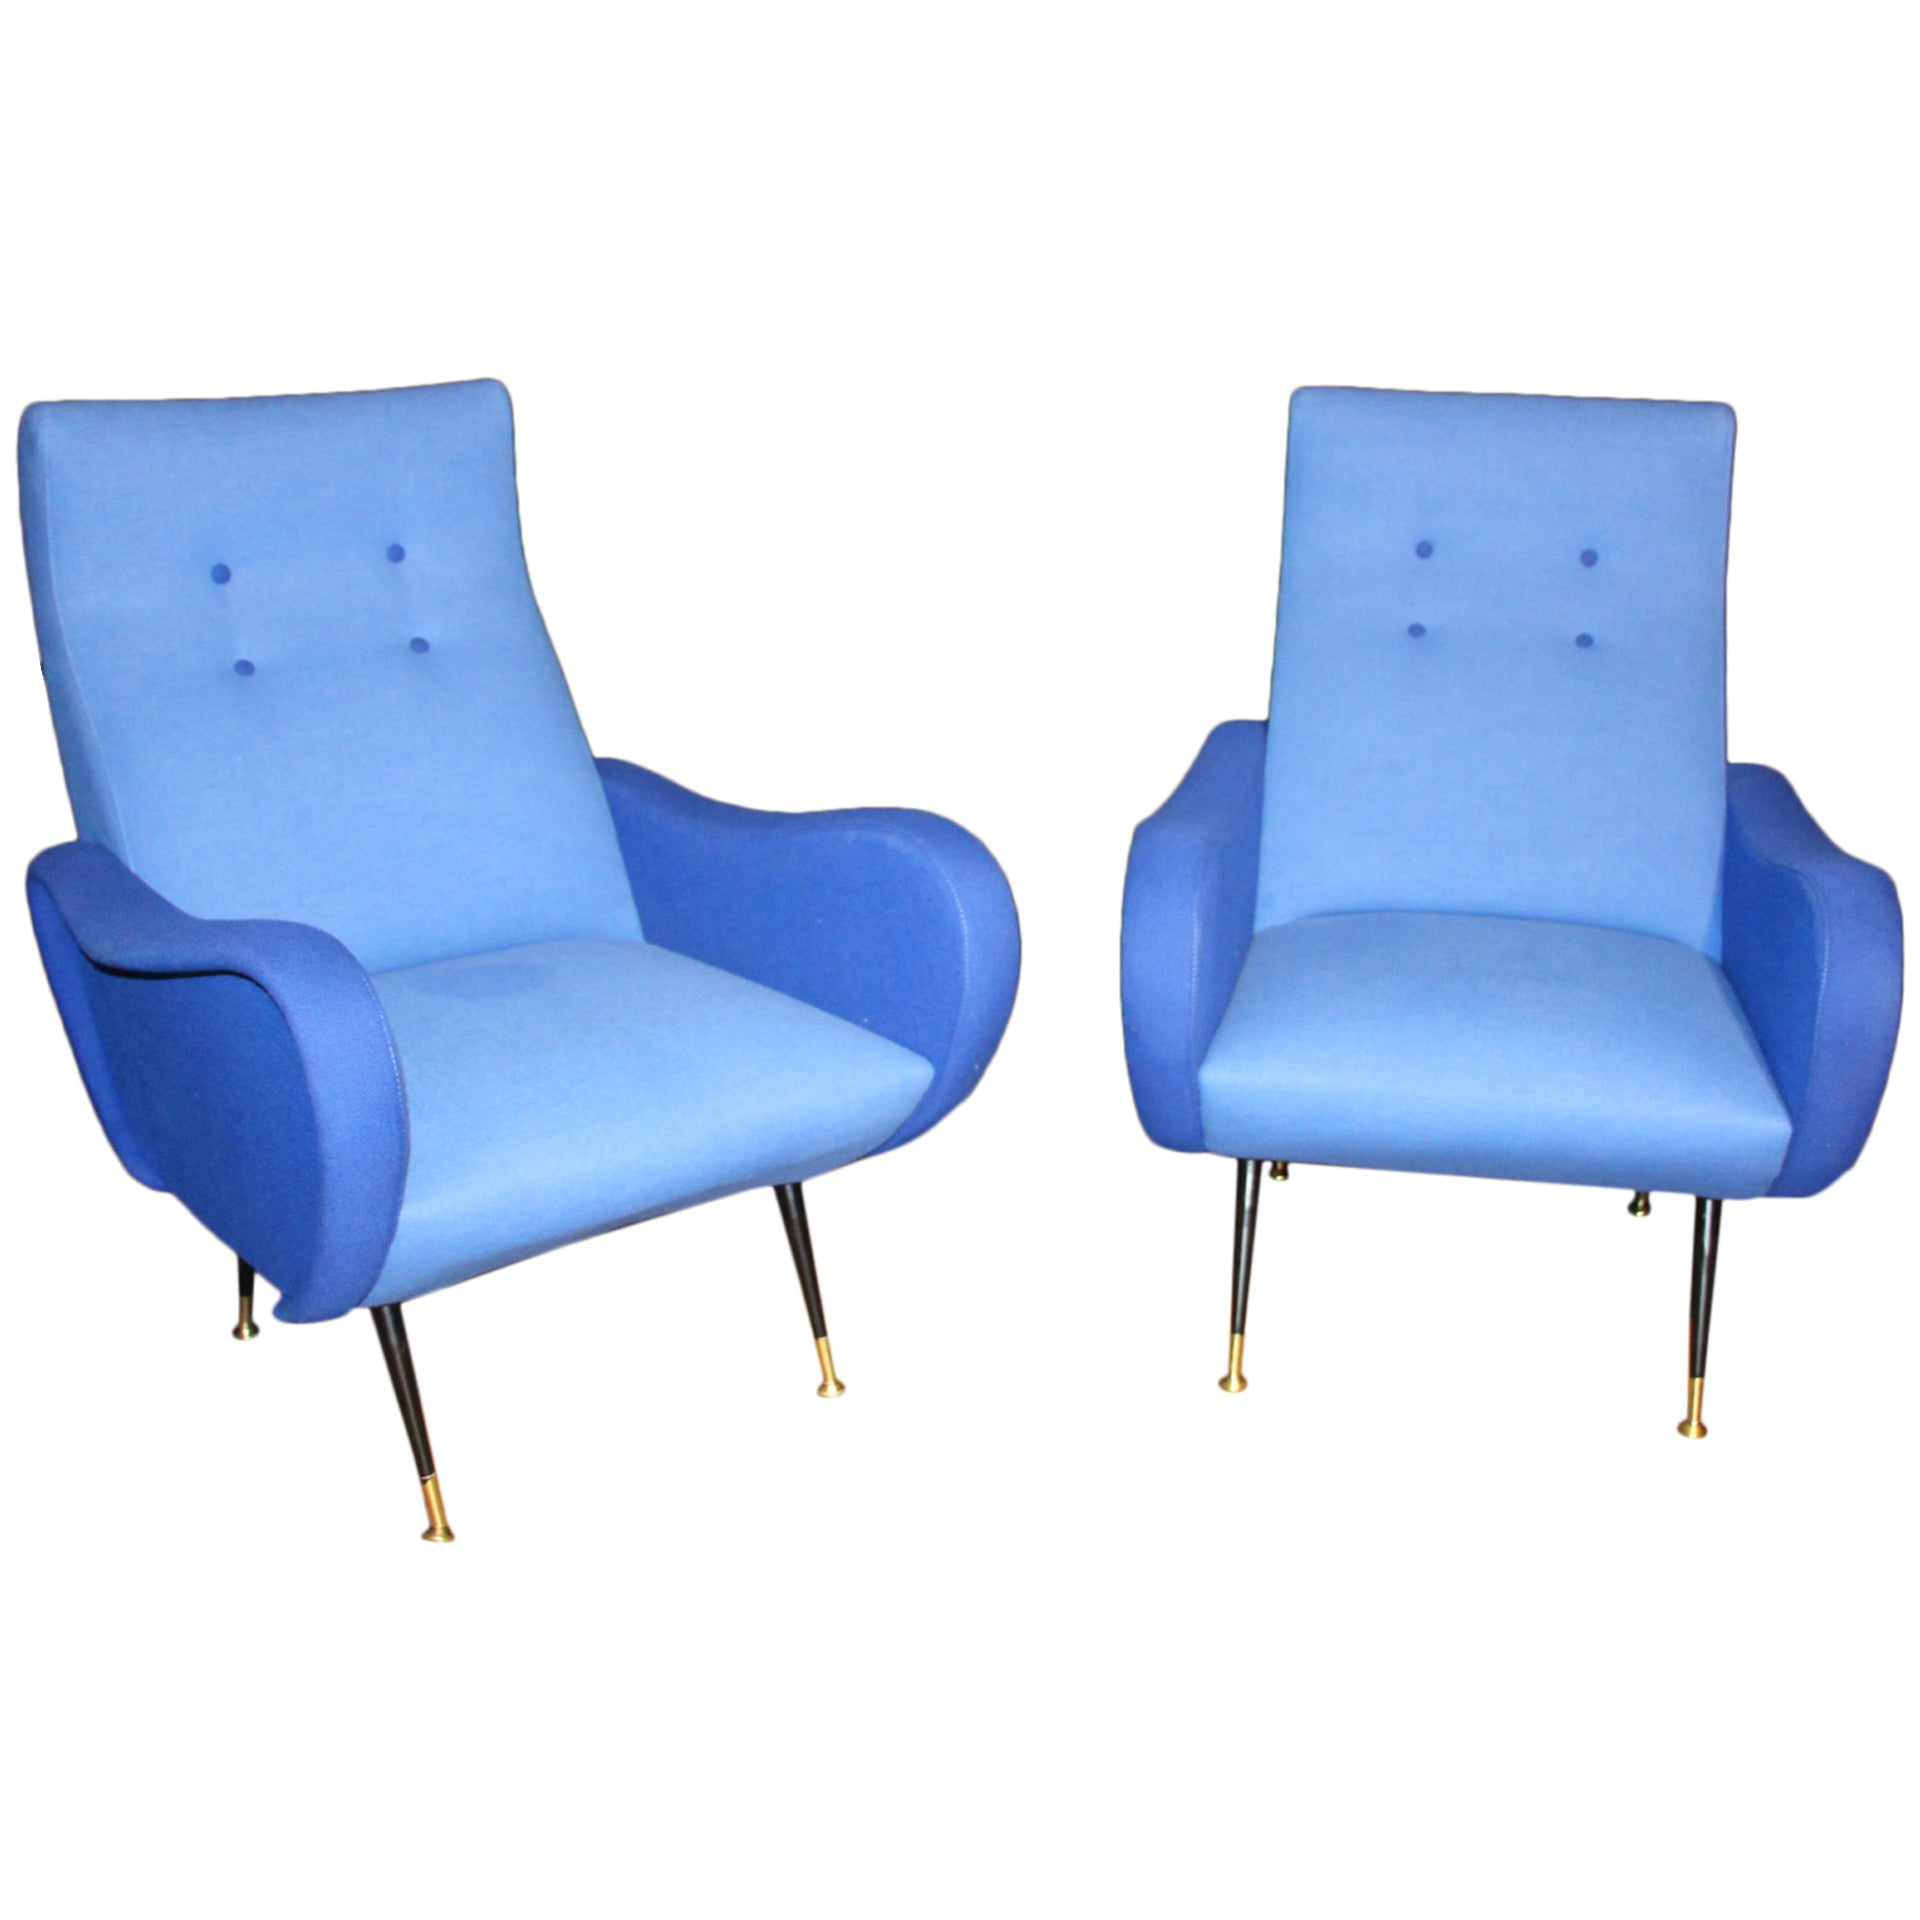 Italian Pair of Blue Mid-Century Chairs In The Style Of Zanuso